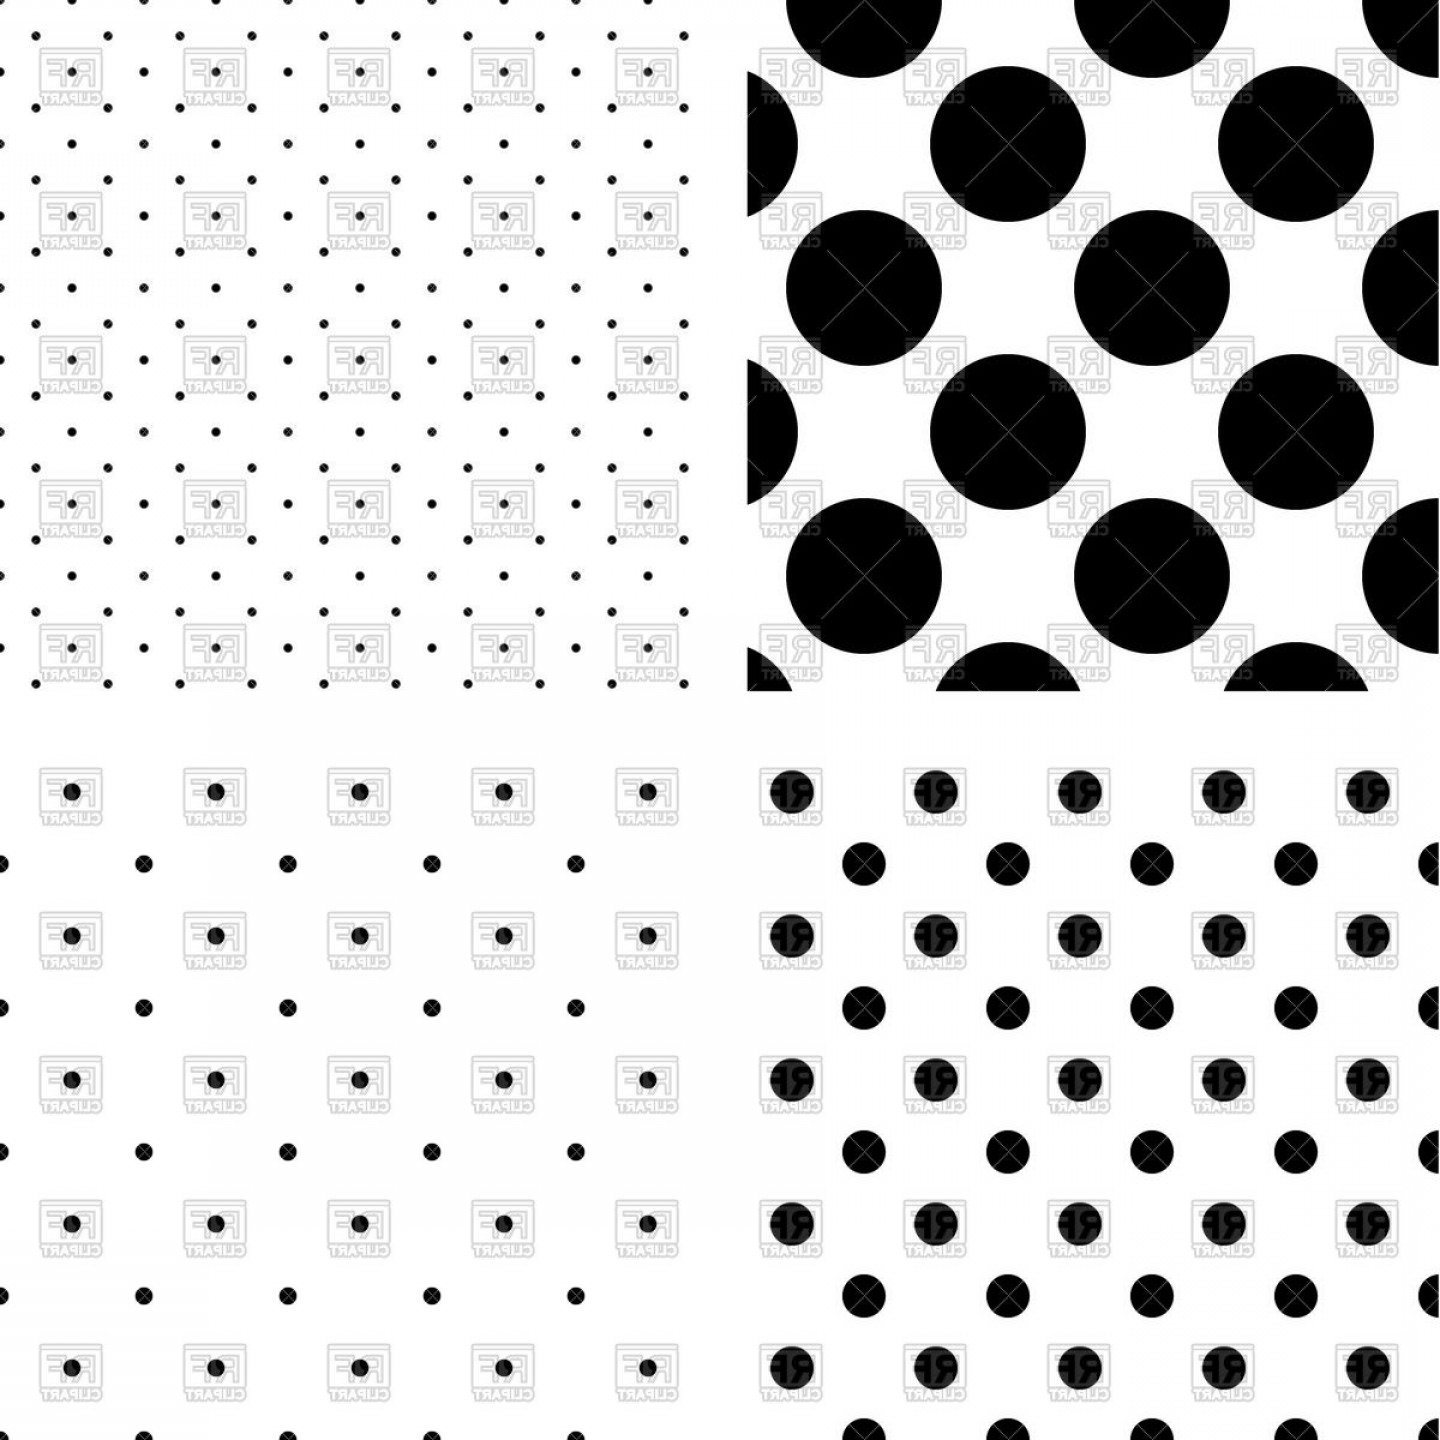 Dot pattern clipart banner black and white download Black And White Polka Dot Seamless Patterns Vector Clipart   SOIDERGI banner black and white download